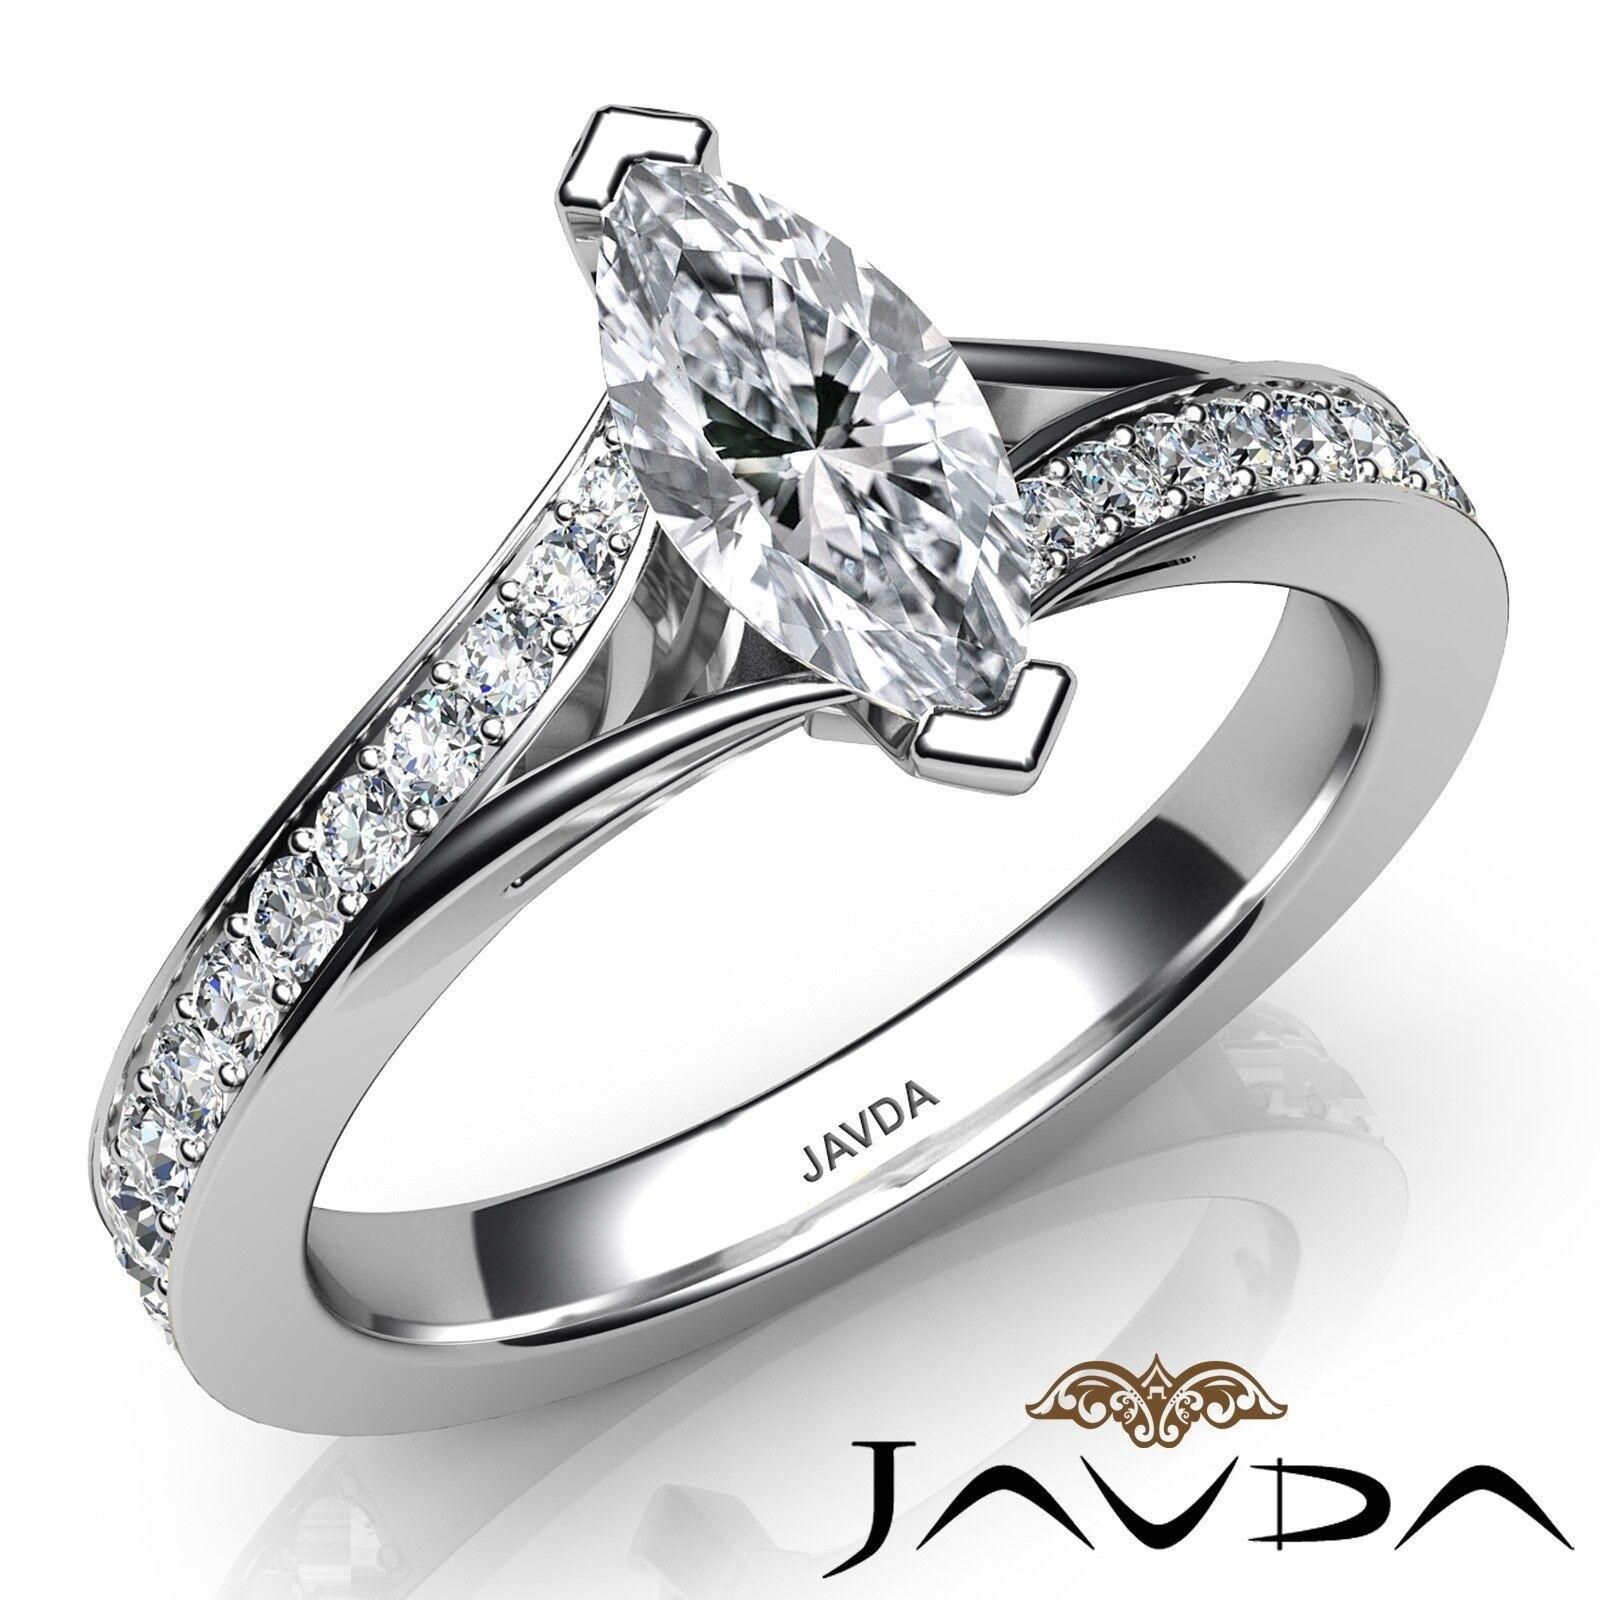 0.85ctw Pave Classic Sidestone Marquise Diamond Engagement Ring GIA F-VS1 W Gold